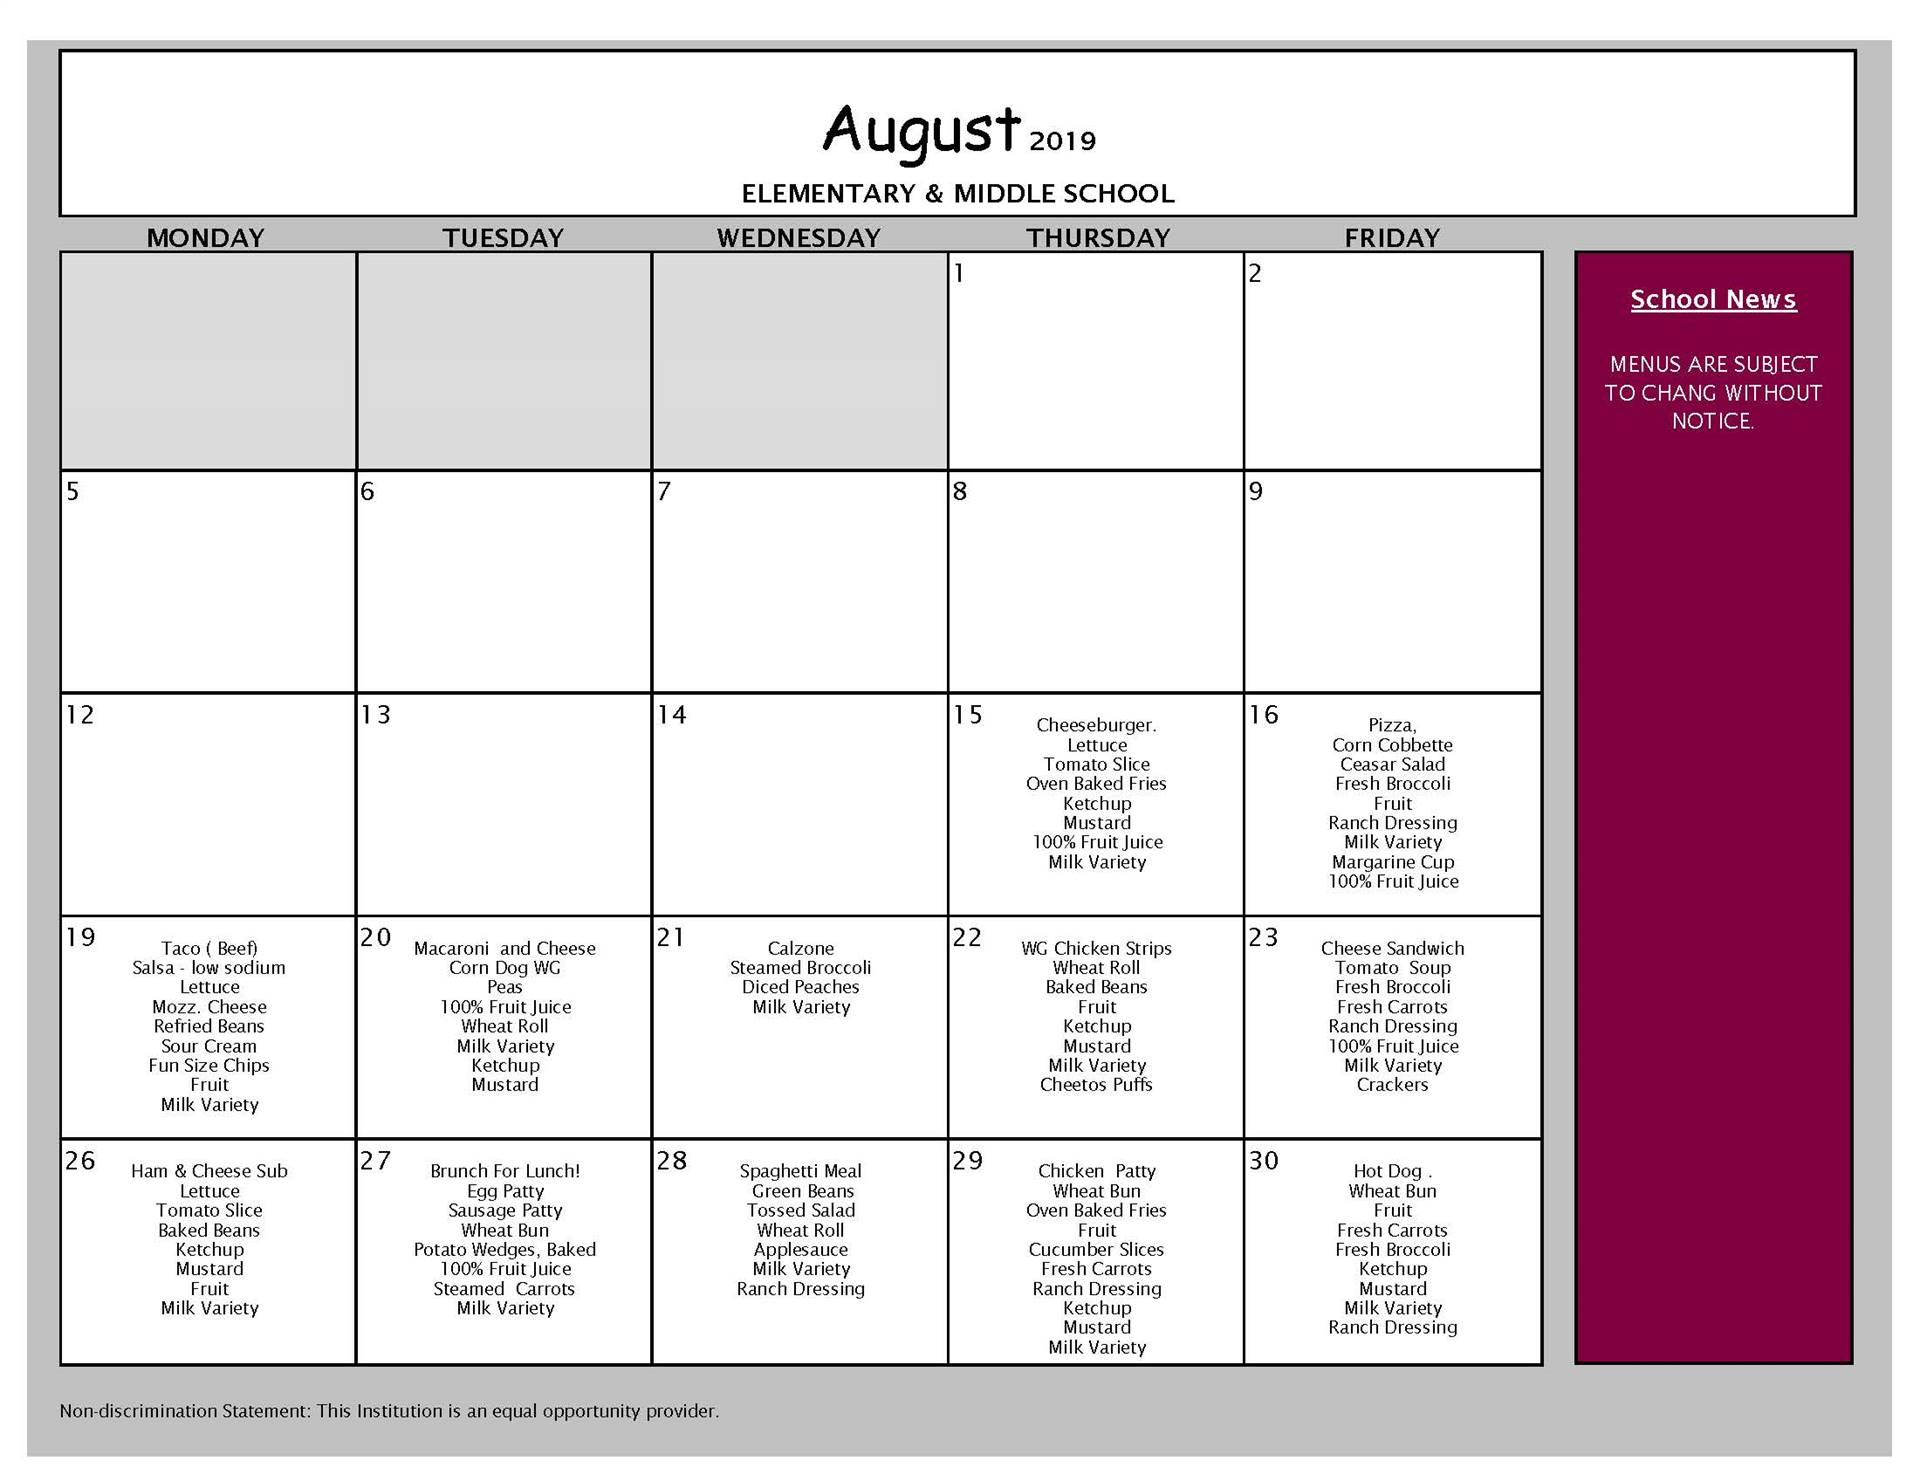 August Lunch Menu Grades PK-8